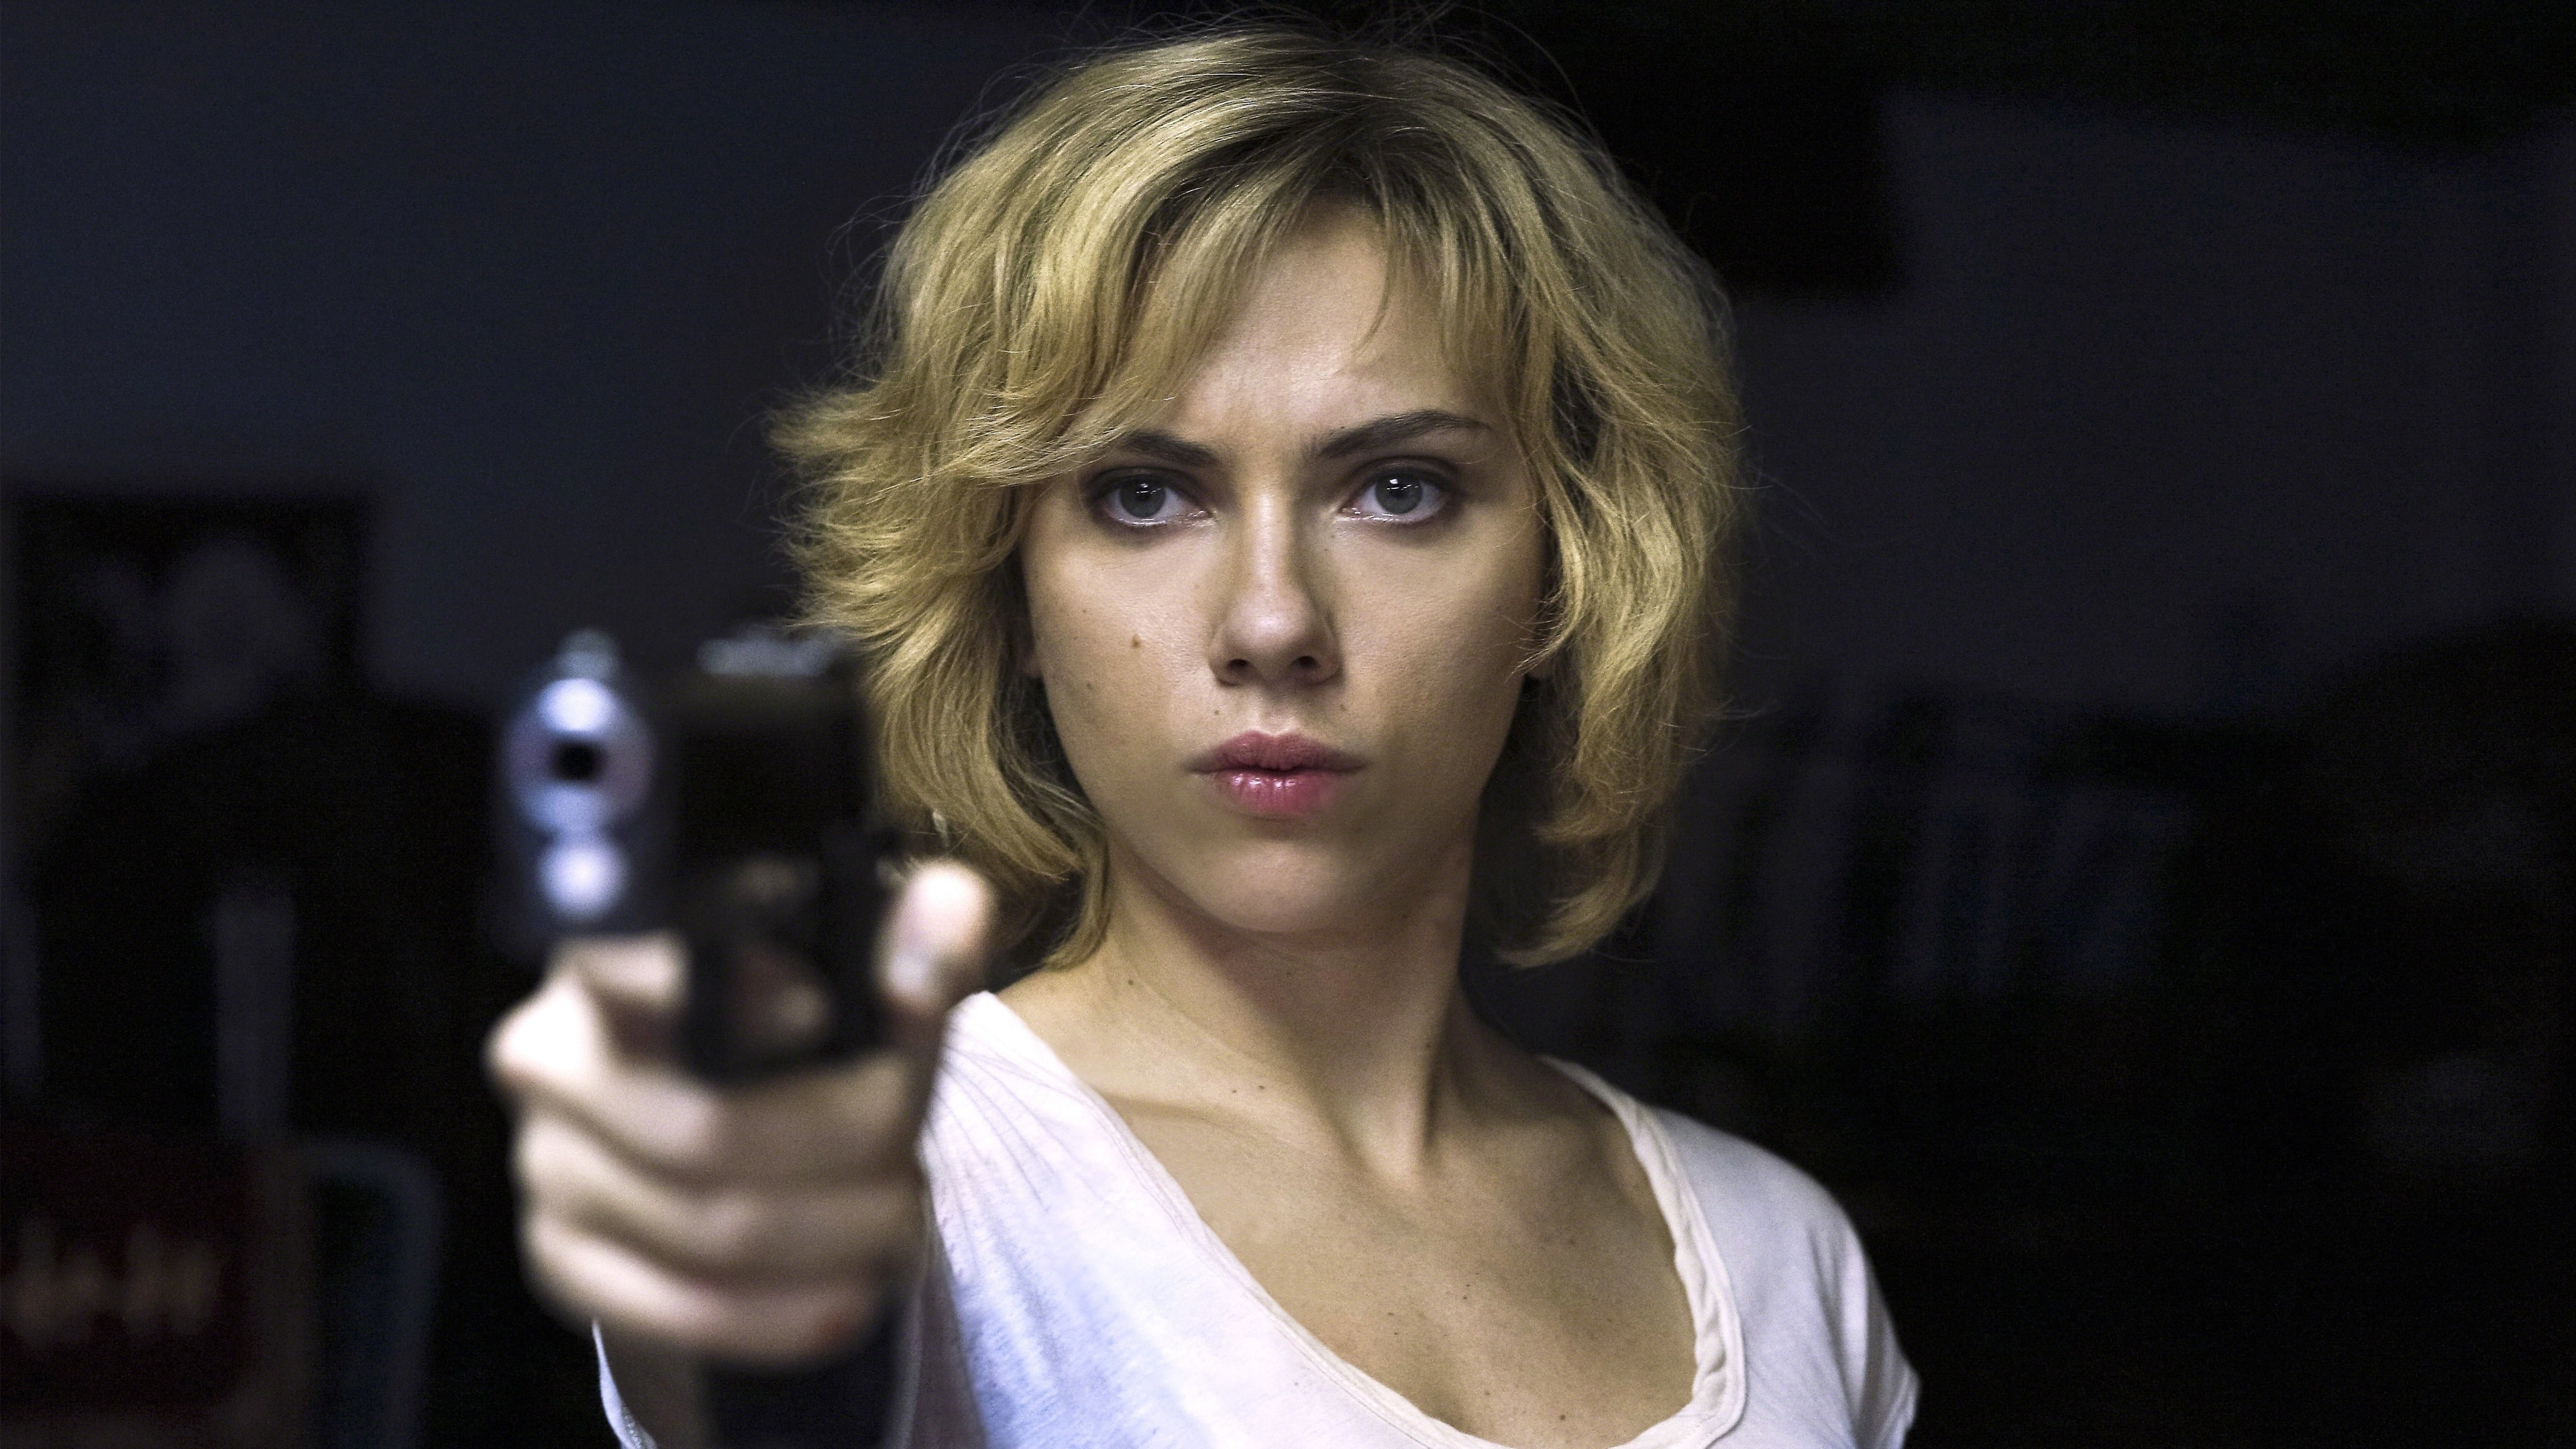 Scarlett Johansson HD Wallpapers | 7wallpapers.net